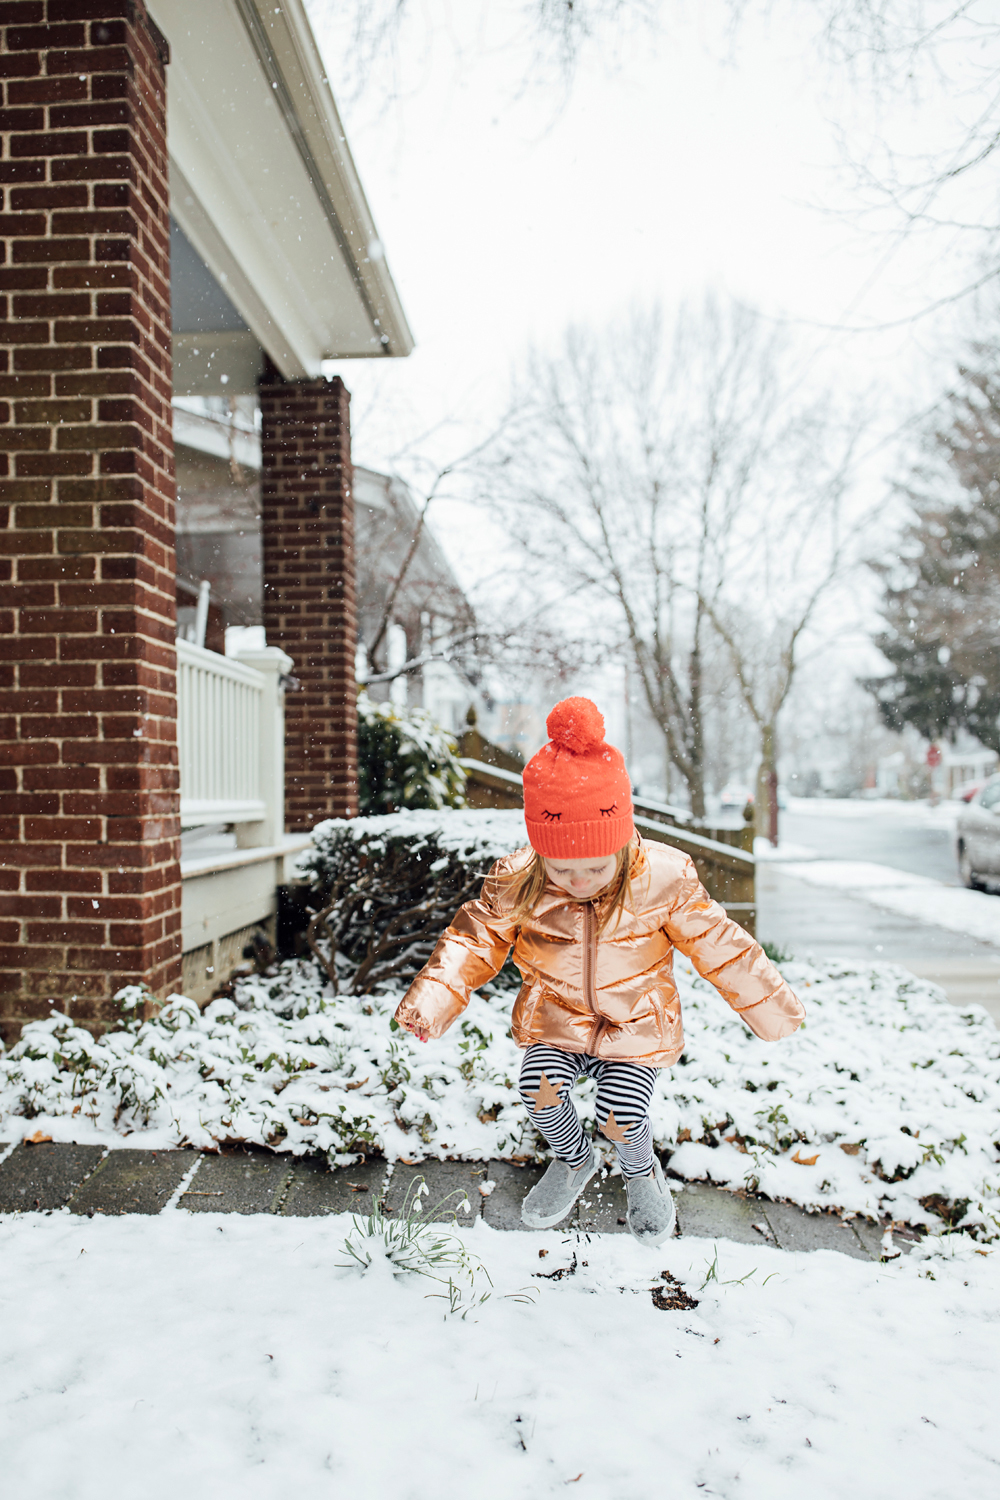 brookecourtney_snowday_prayers_lancasterblogger-13.jpg